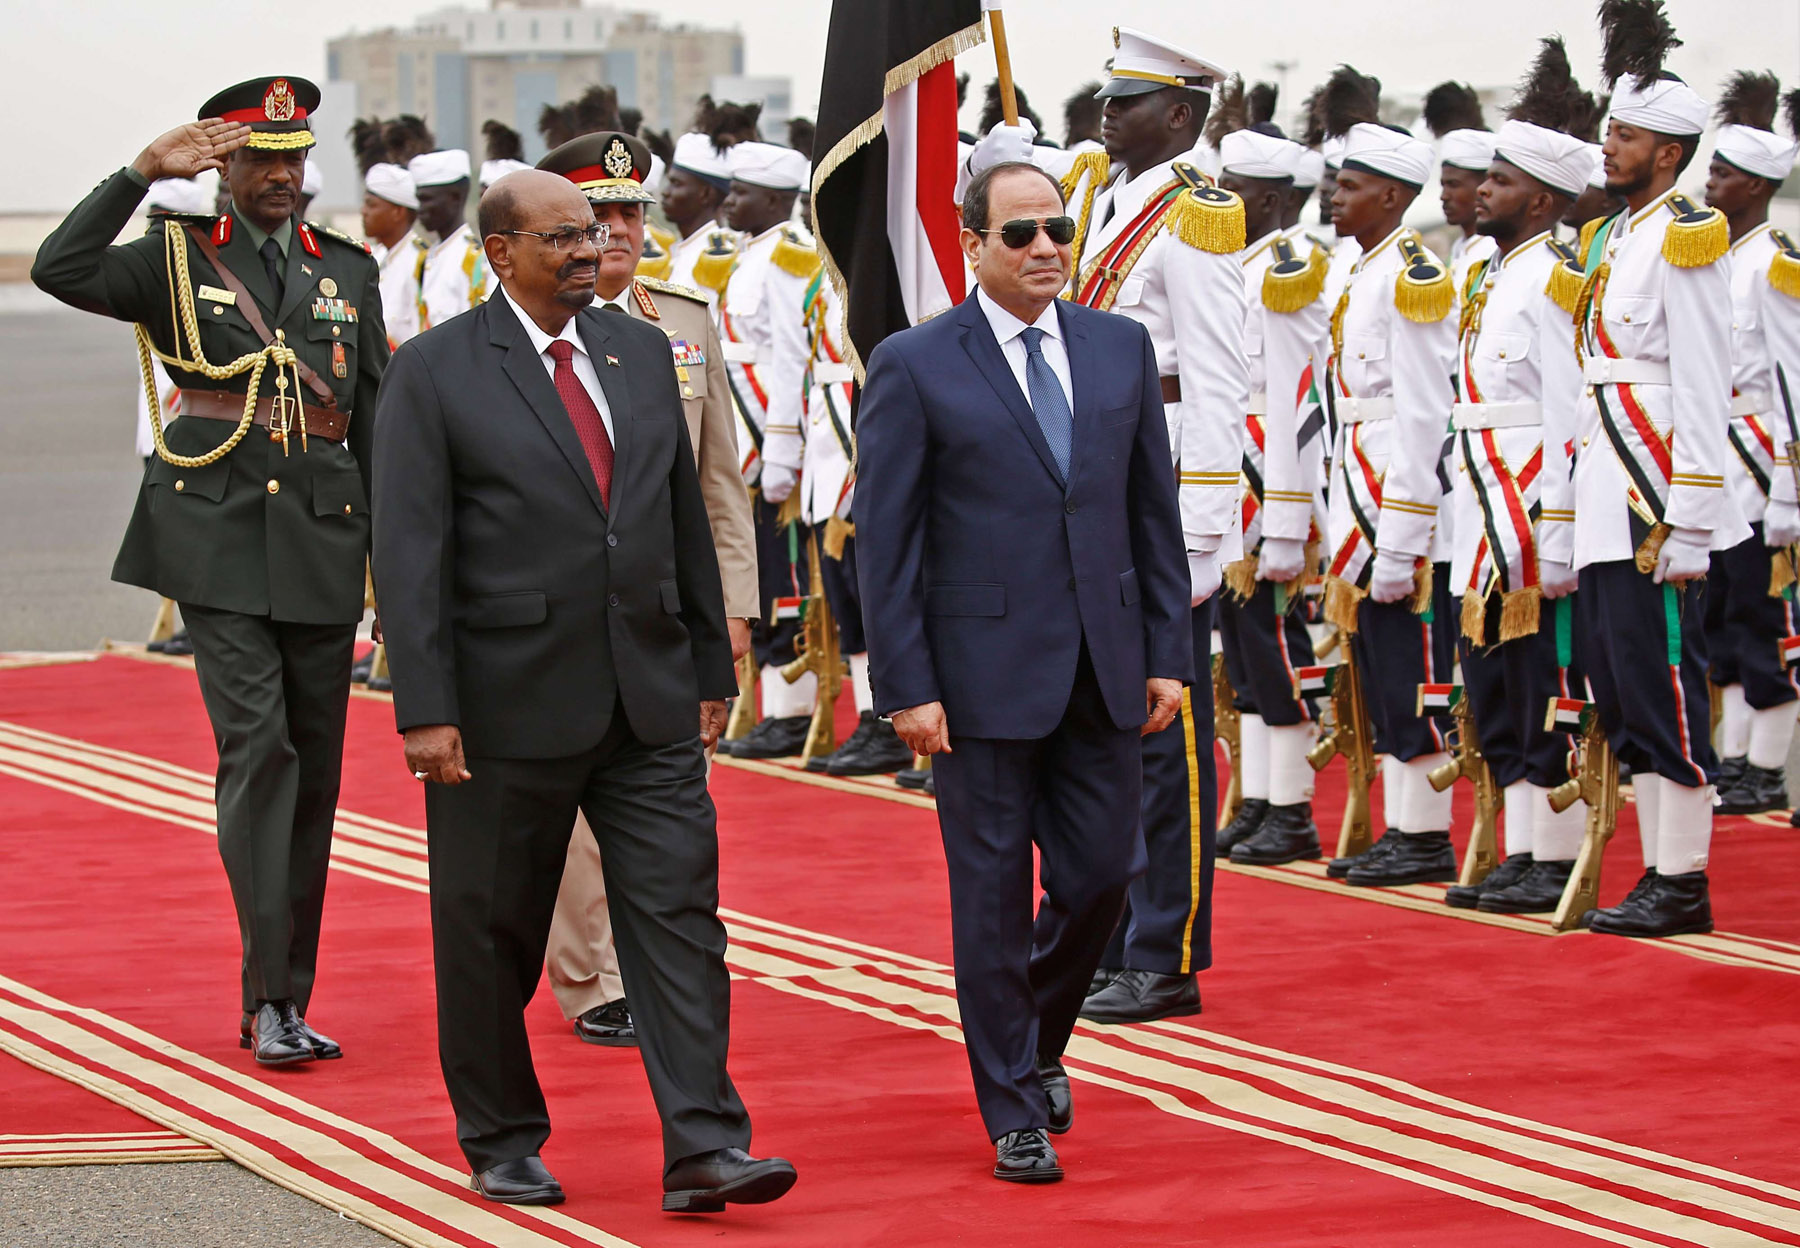 Sudan's President Omar al-Bashir (C-L) inspects an honour guard with his Egyptian counterpart  Abdel Fattah al-Sisi (C-R) in Khartoum, on October 25. (AFP)